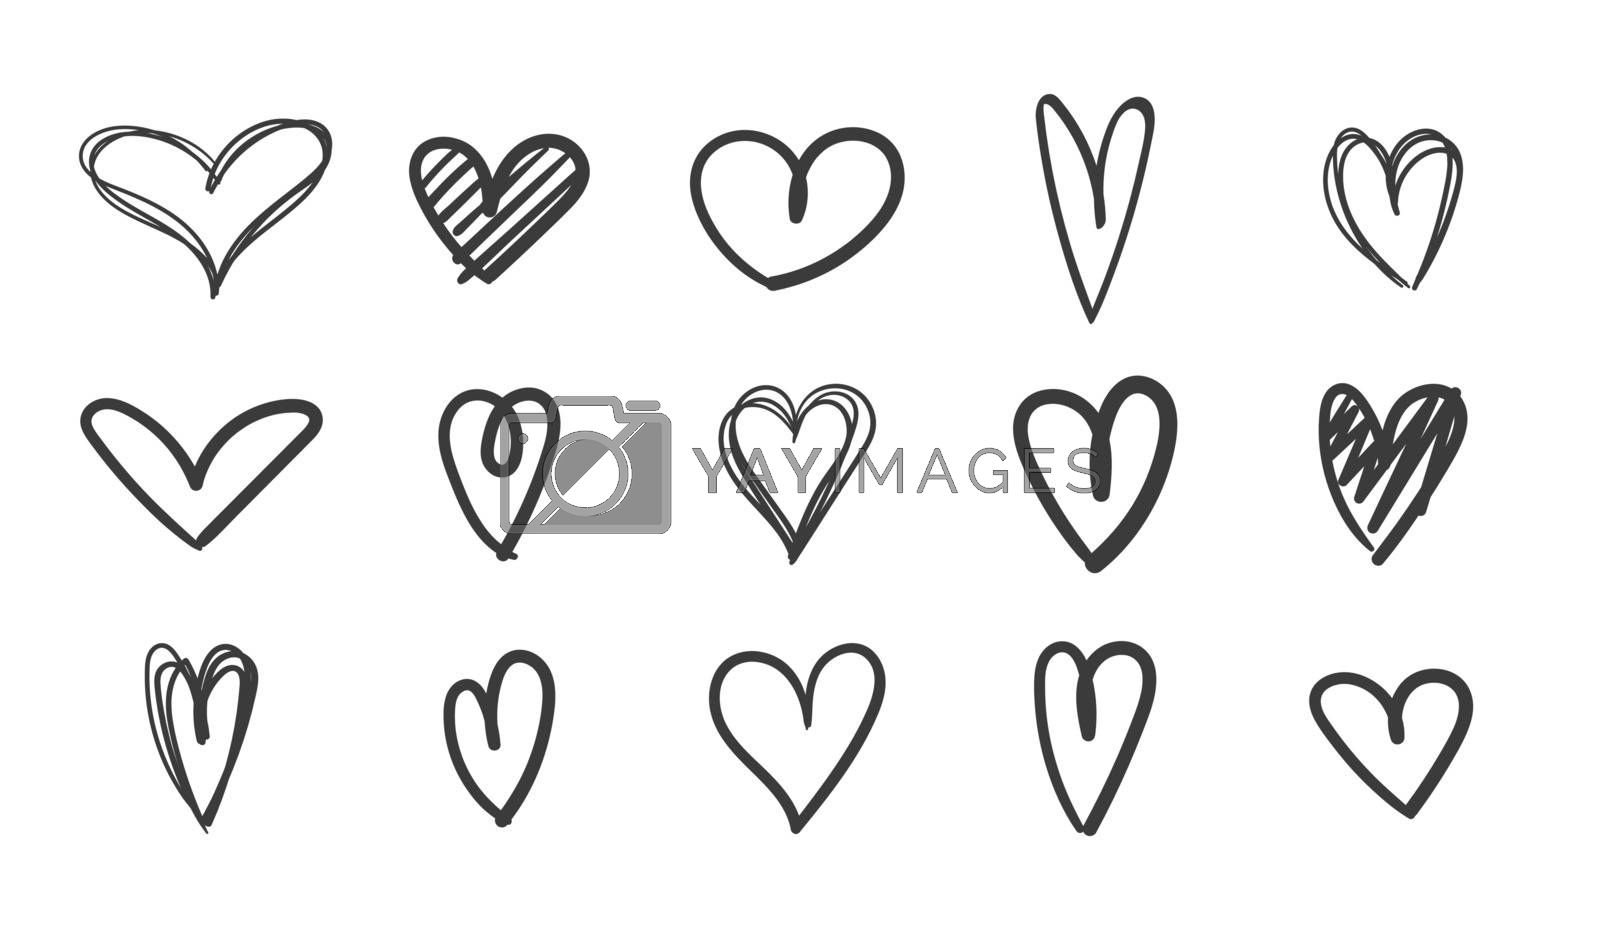 Heand drawn heart icon set. Black heart sketch art on background. Live broadcast of video, chat likes. Love symbol